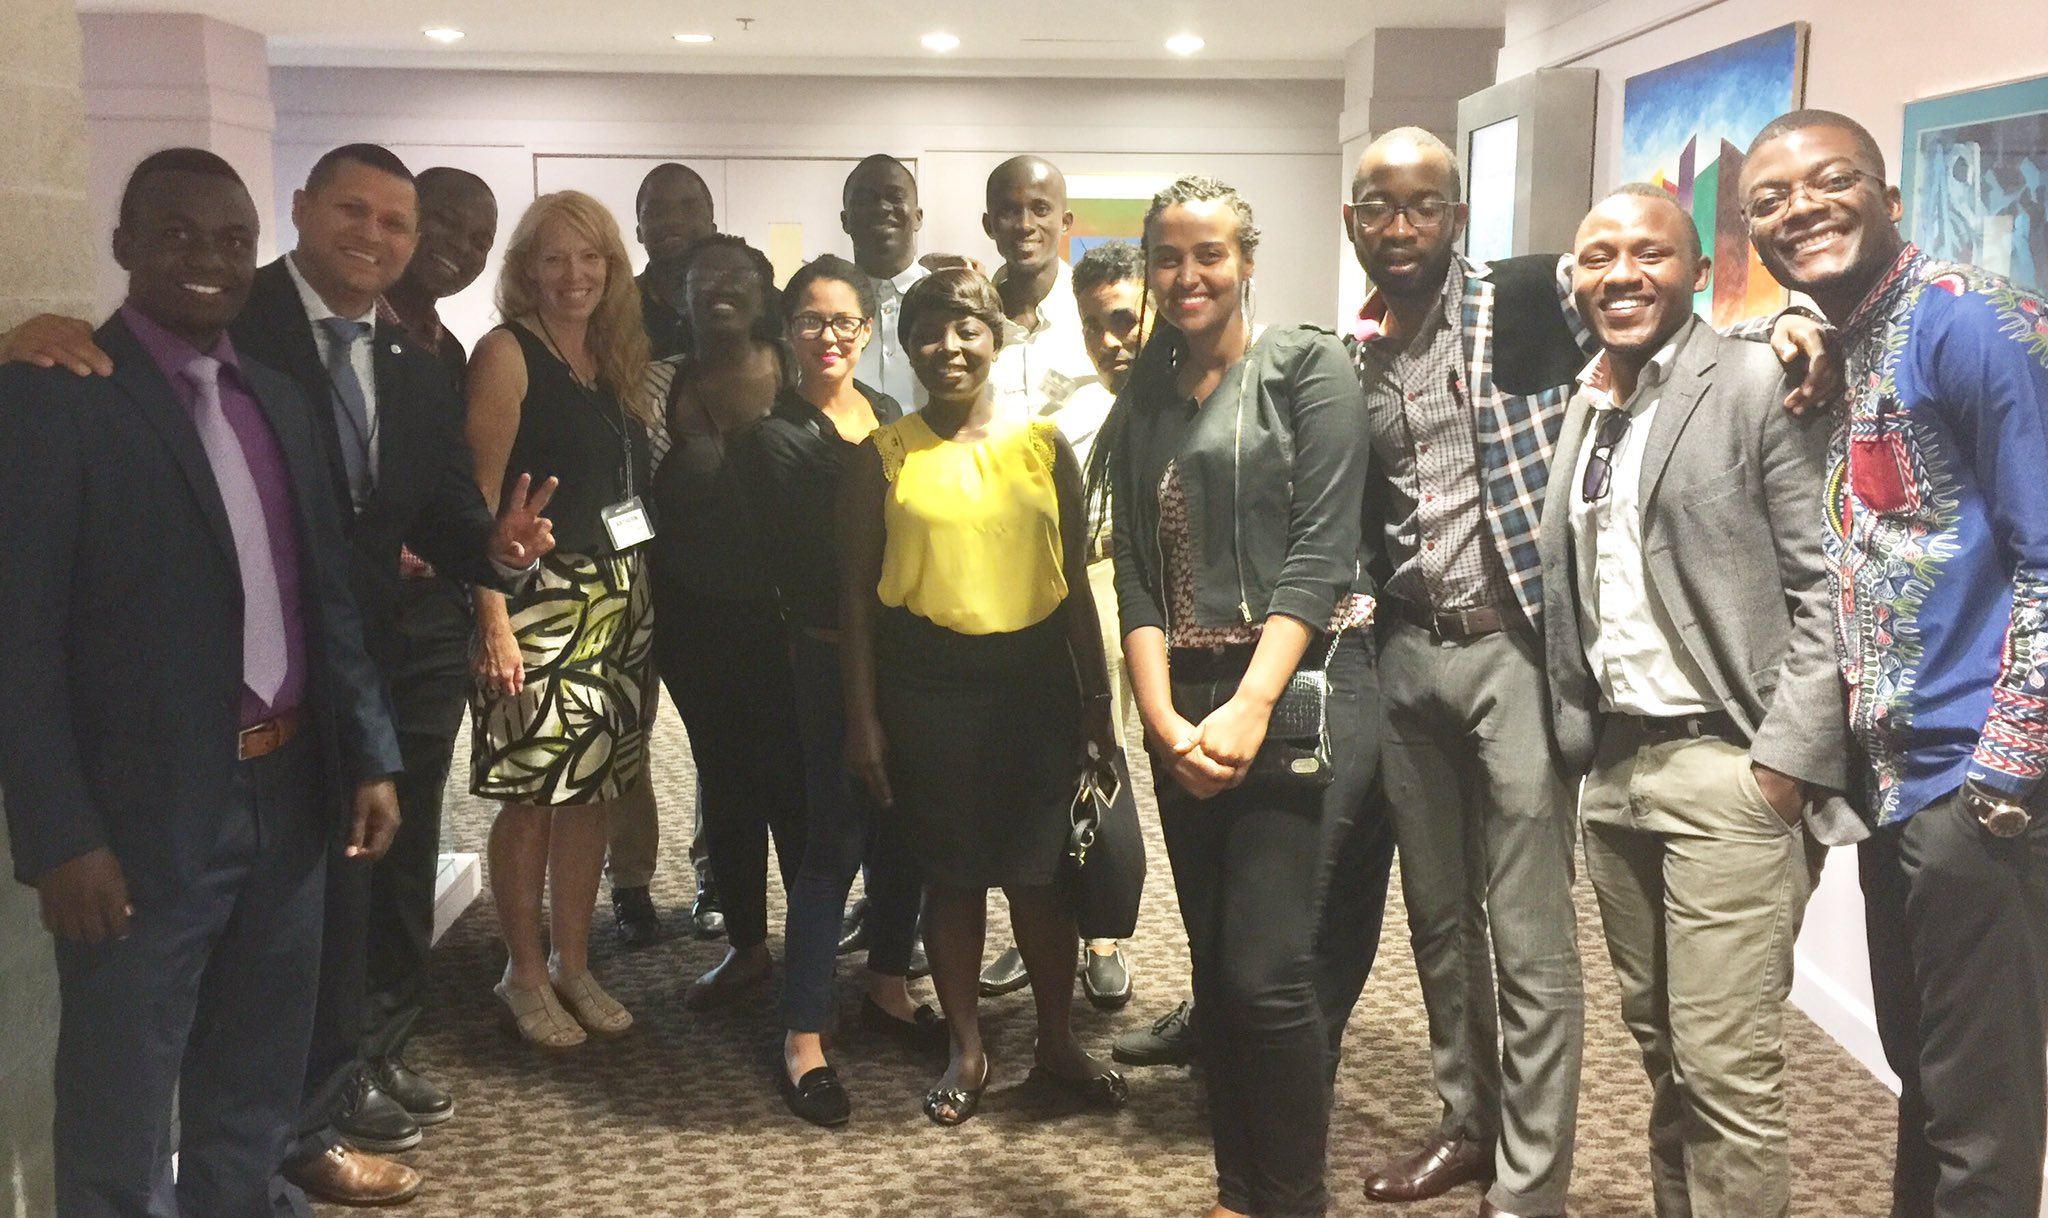 Excellent dinner & orientation tonight at #crispbootcamp! Proud to be in the presence of many #MacroSW & bonus the Mandela Fellows! #policy https://t.co/E9zevejDpm